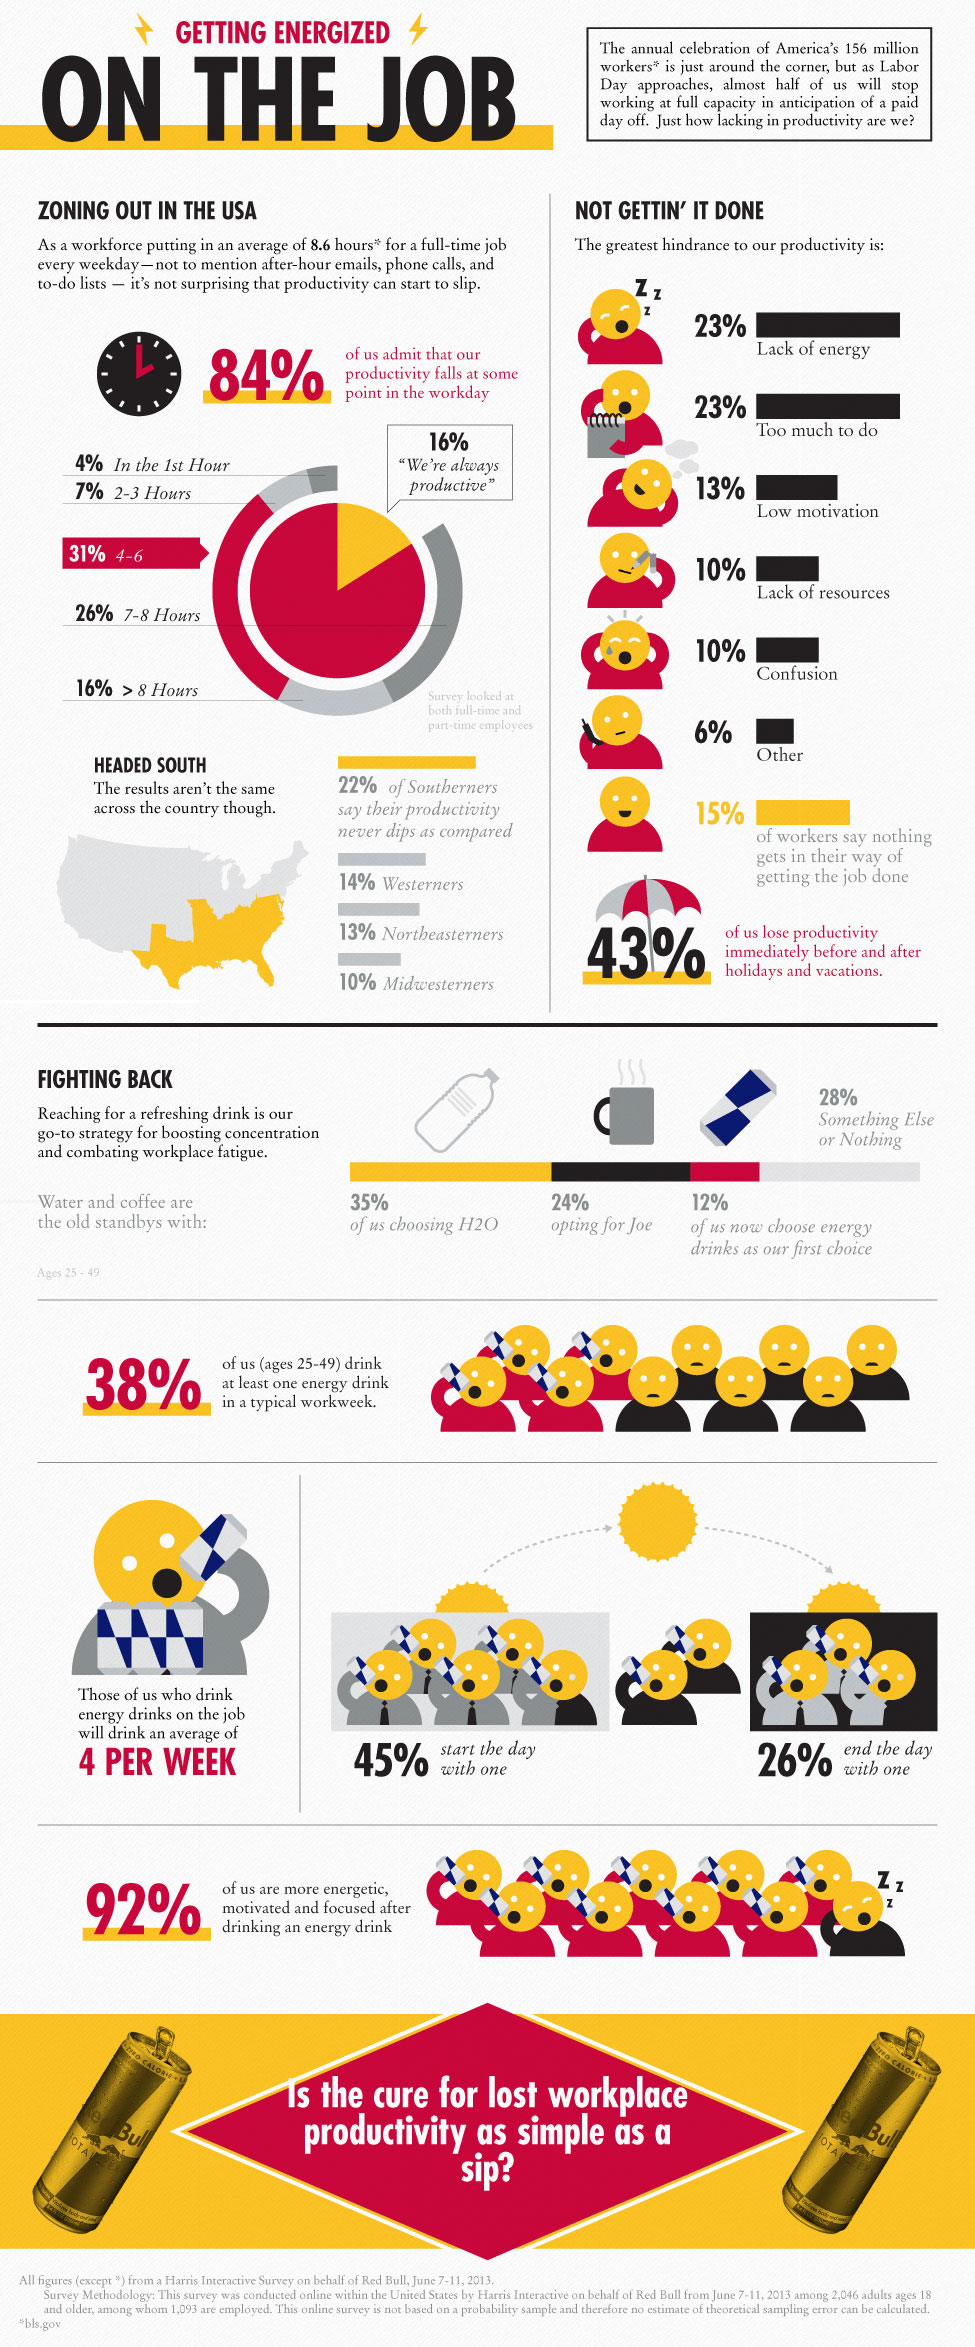 survey-workplace-productivity-in-america_521b8c3bbc7c7